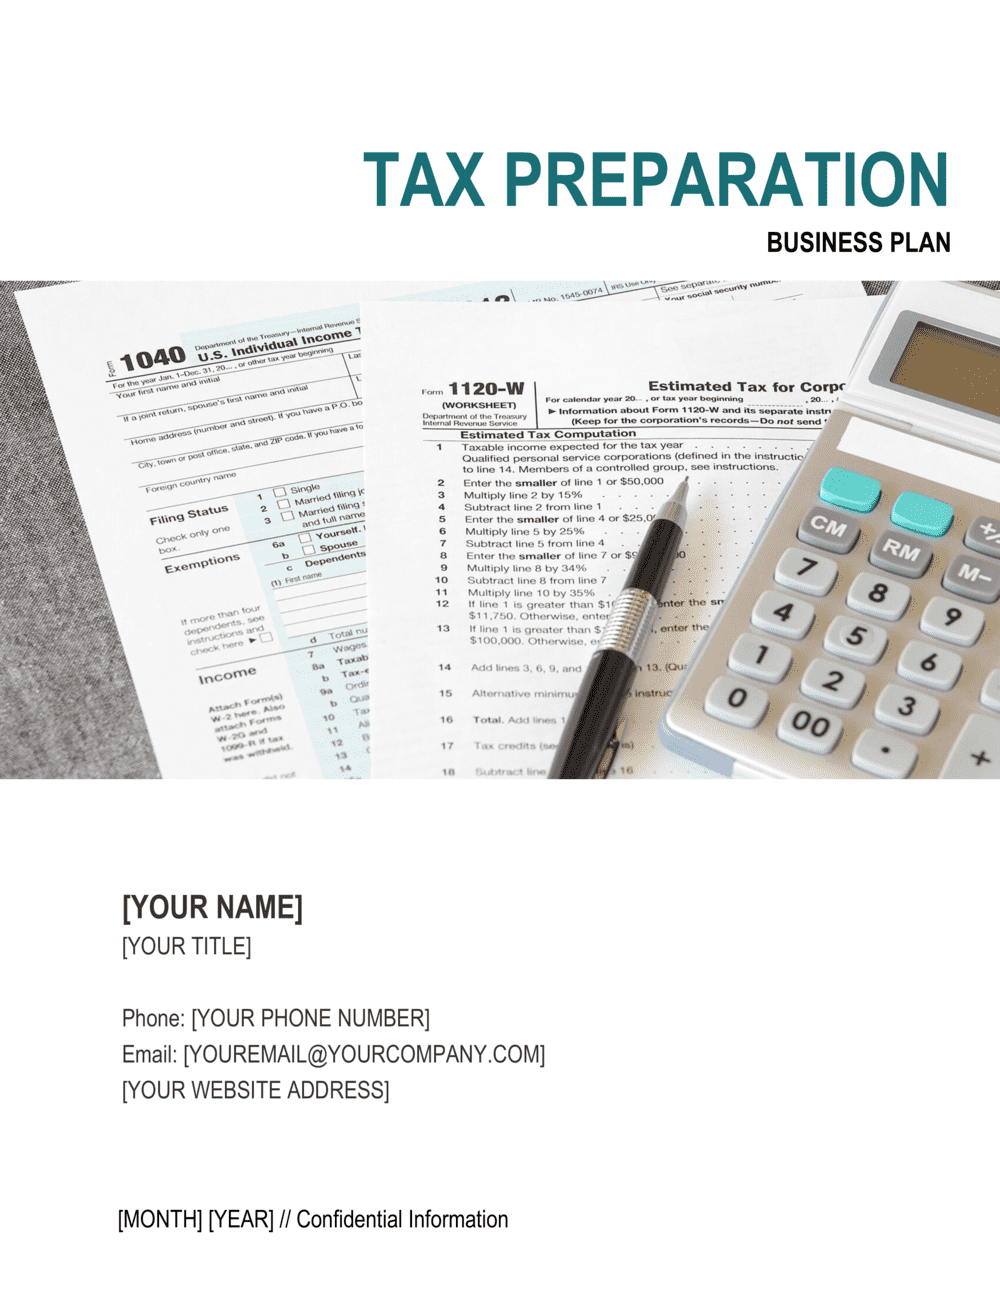 Business-in-a-Box's Tax Preparation Company Business Plan Template